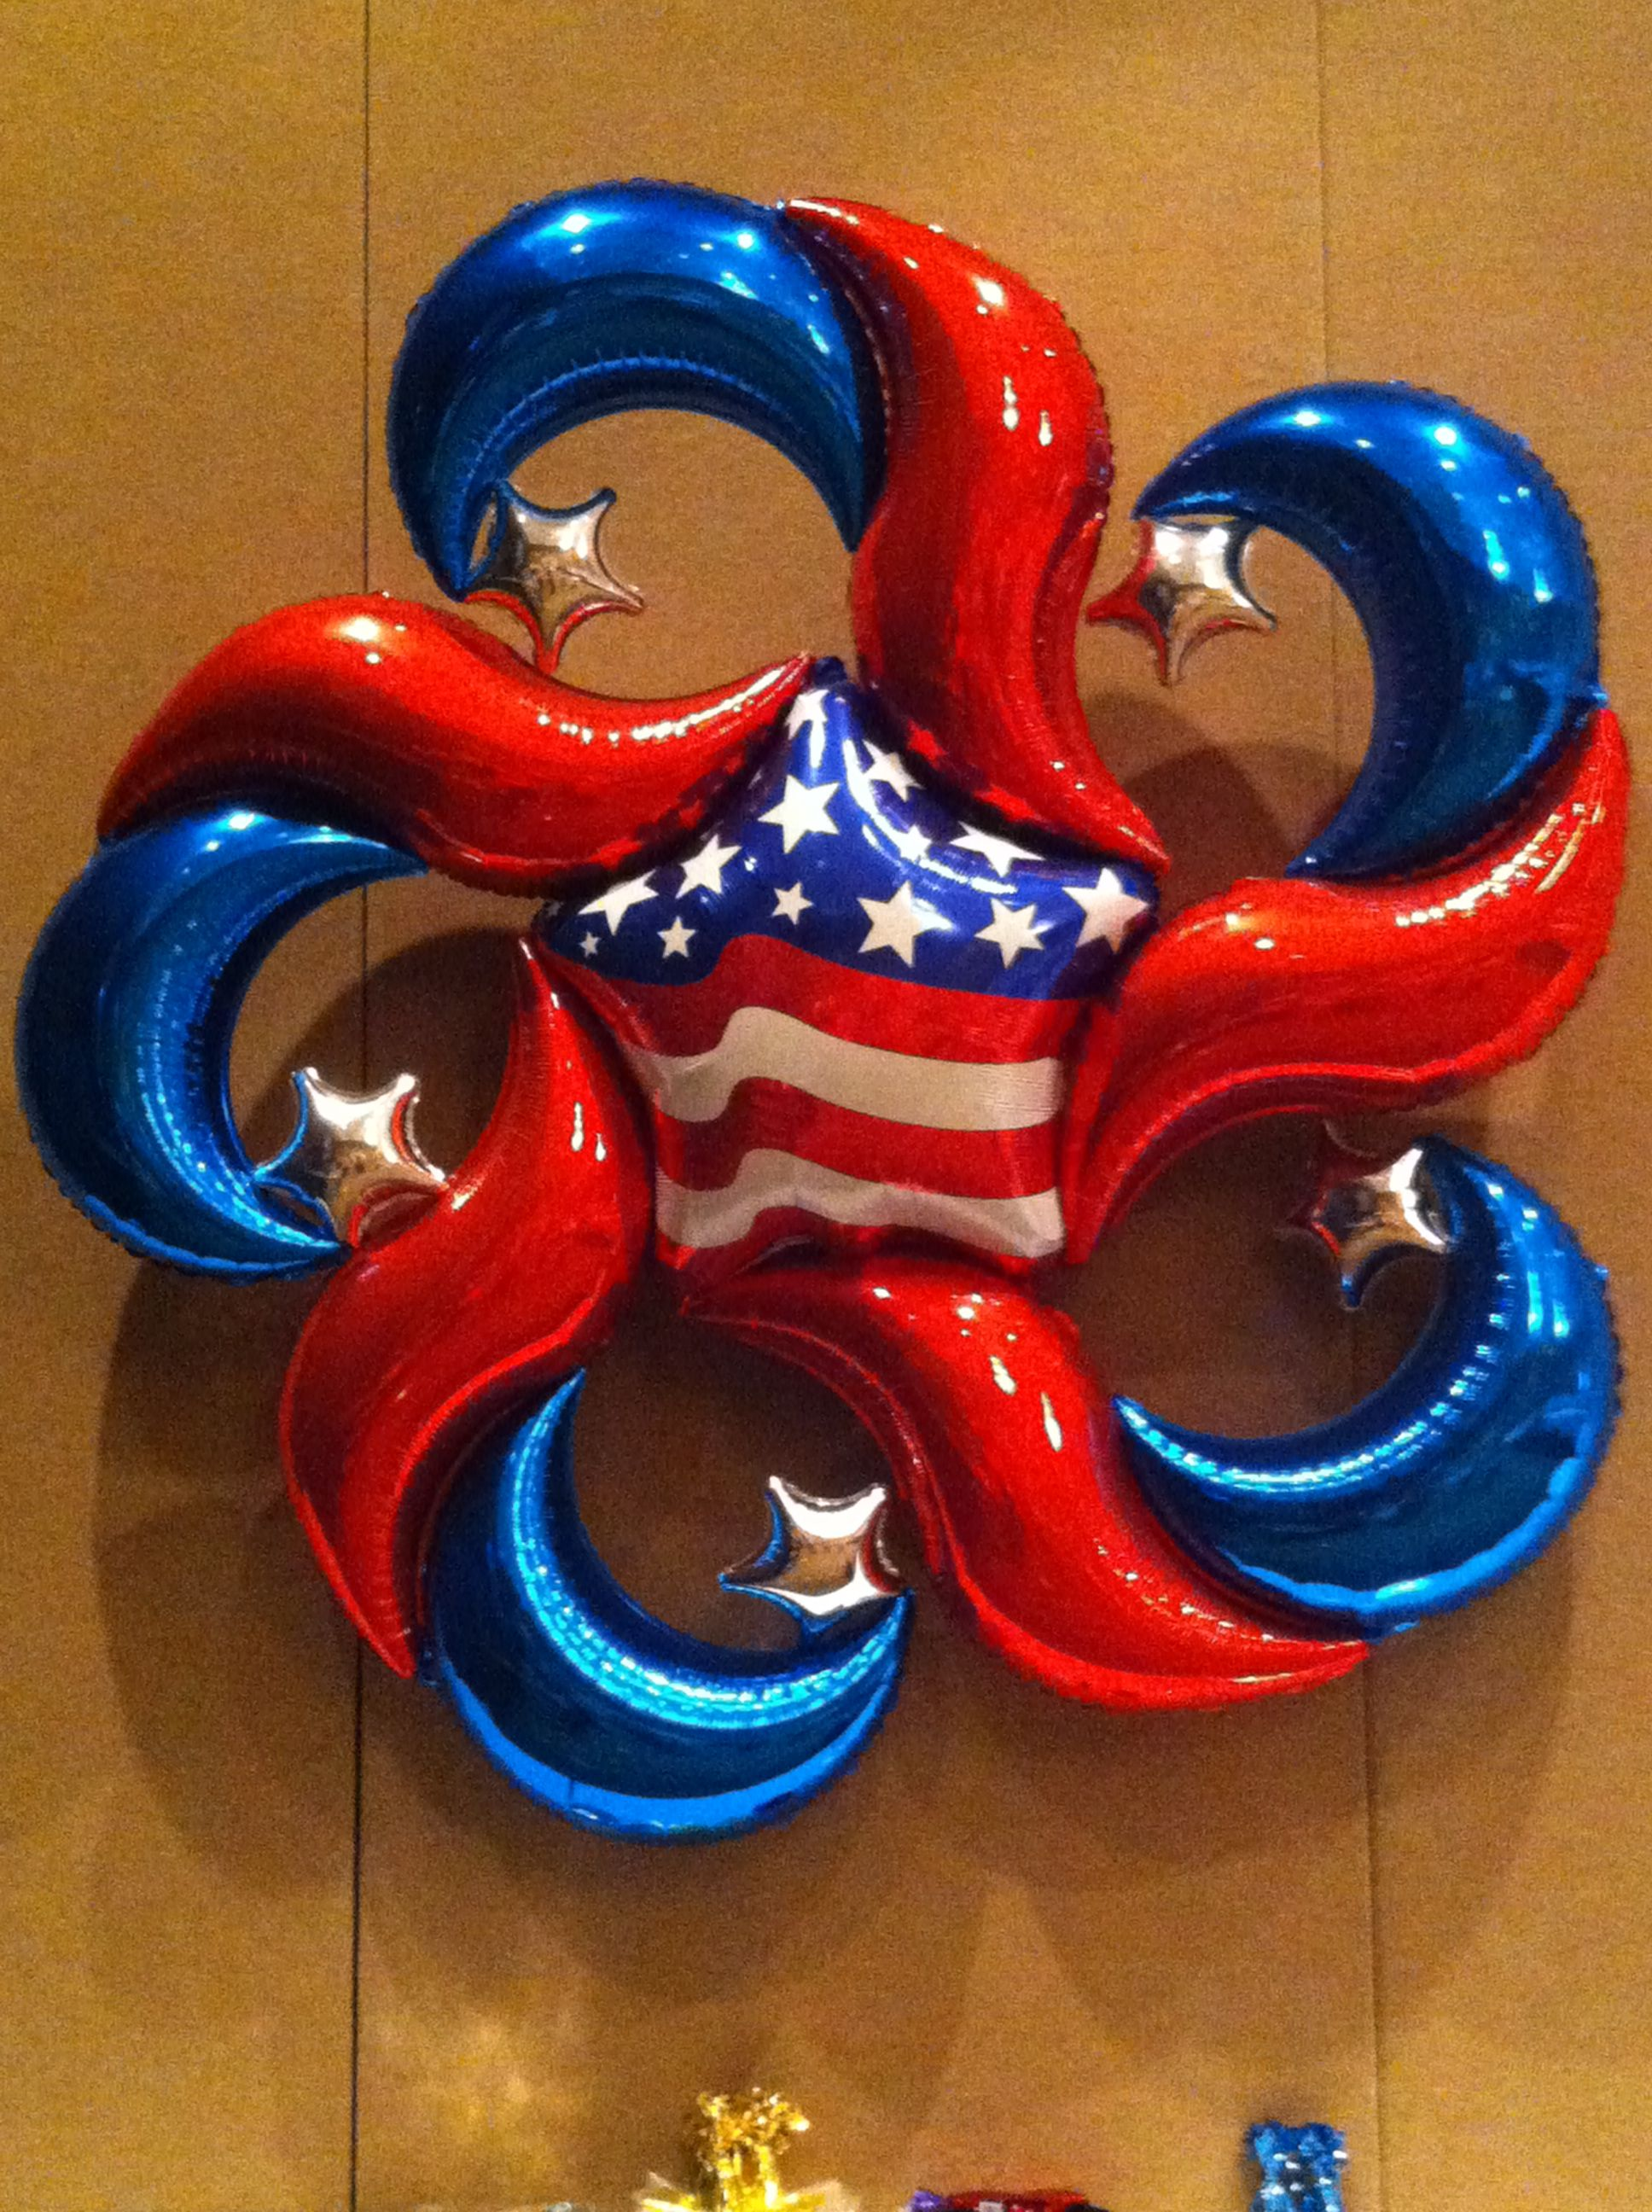 Online wholesale balloons supplies http//www.BalloonsFast